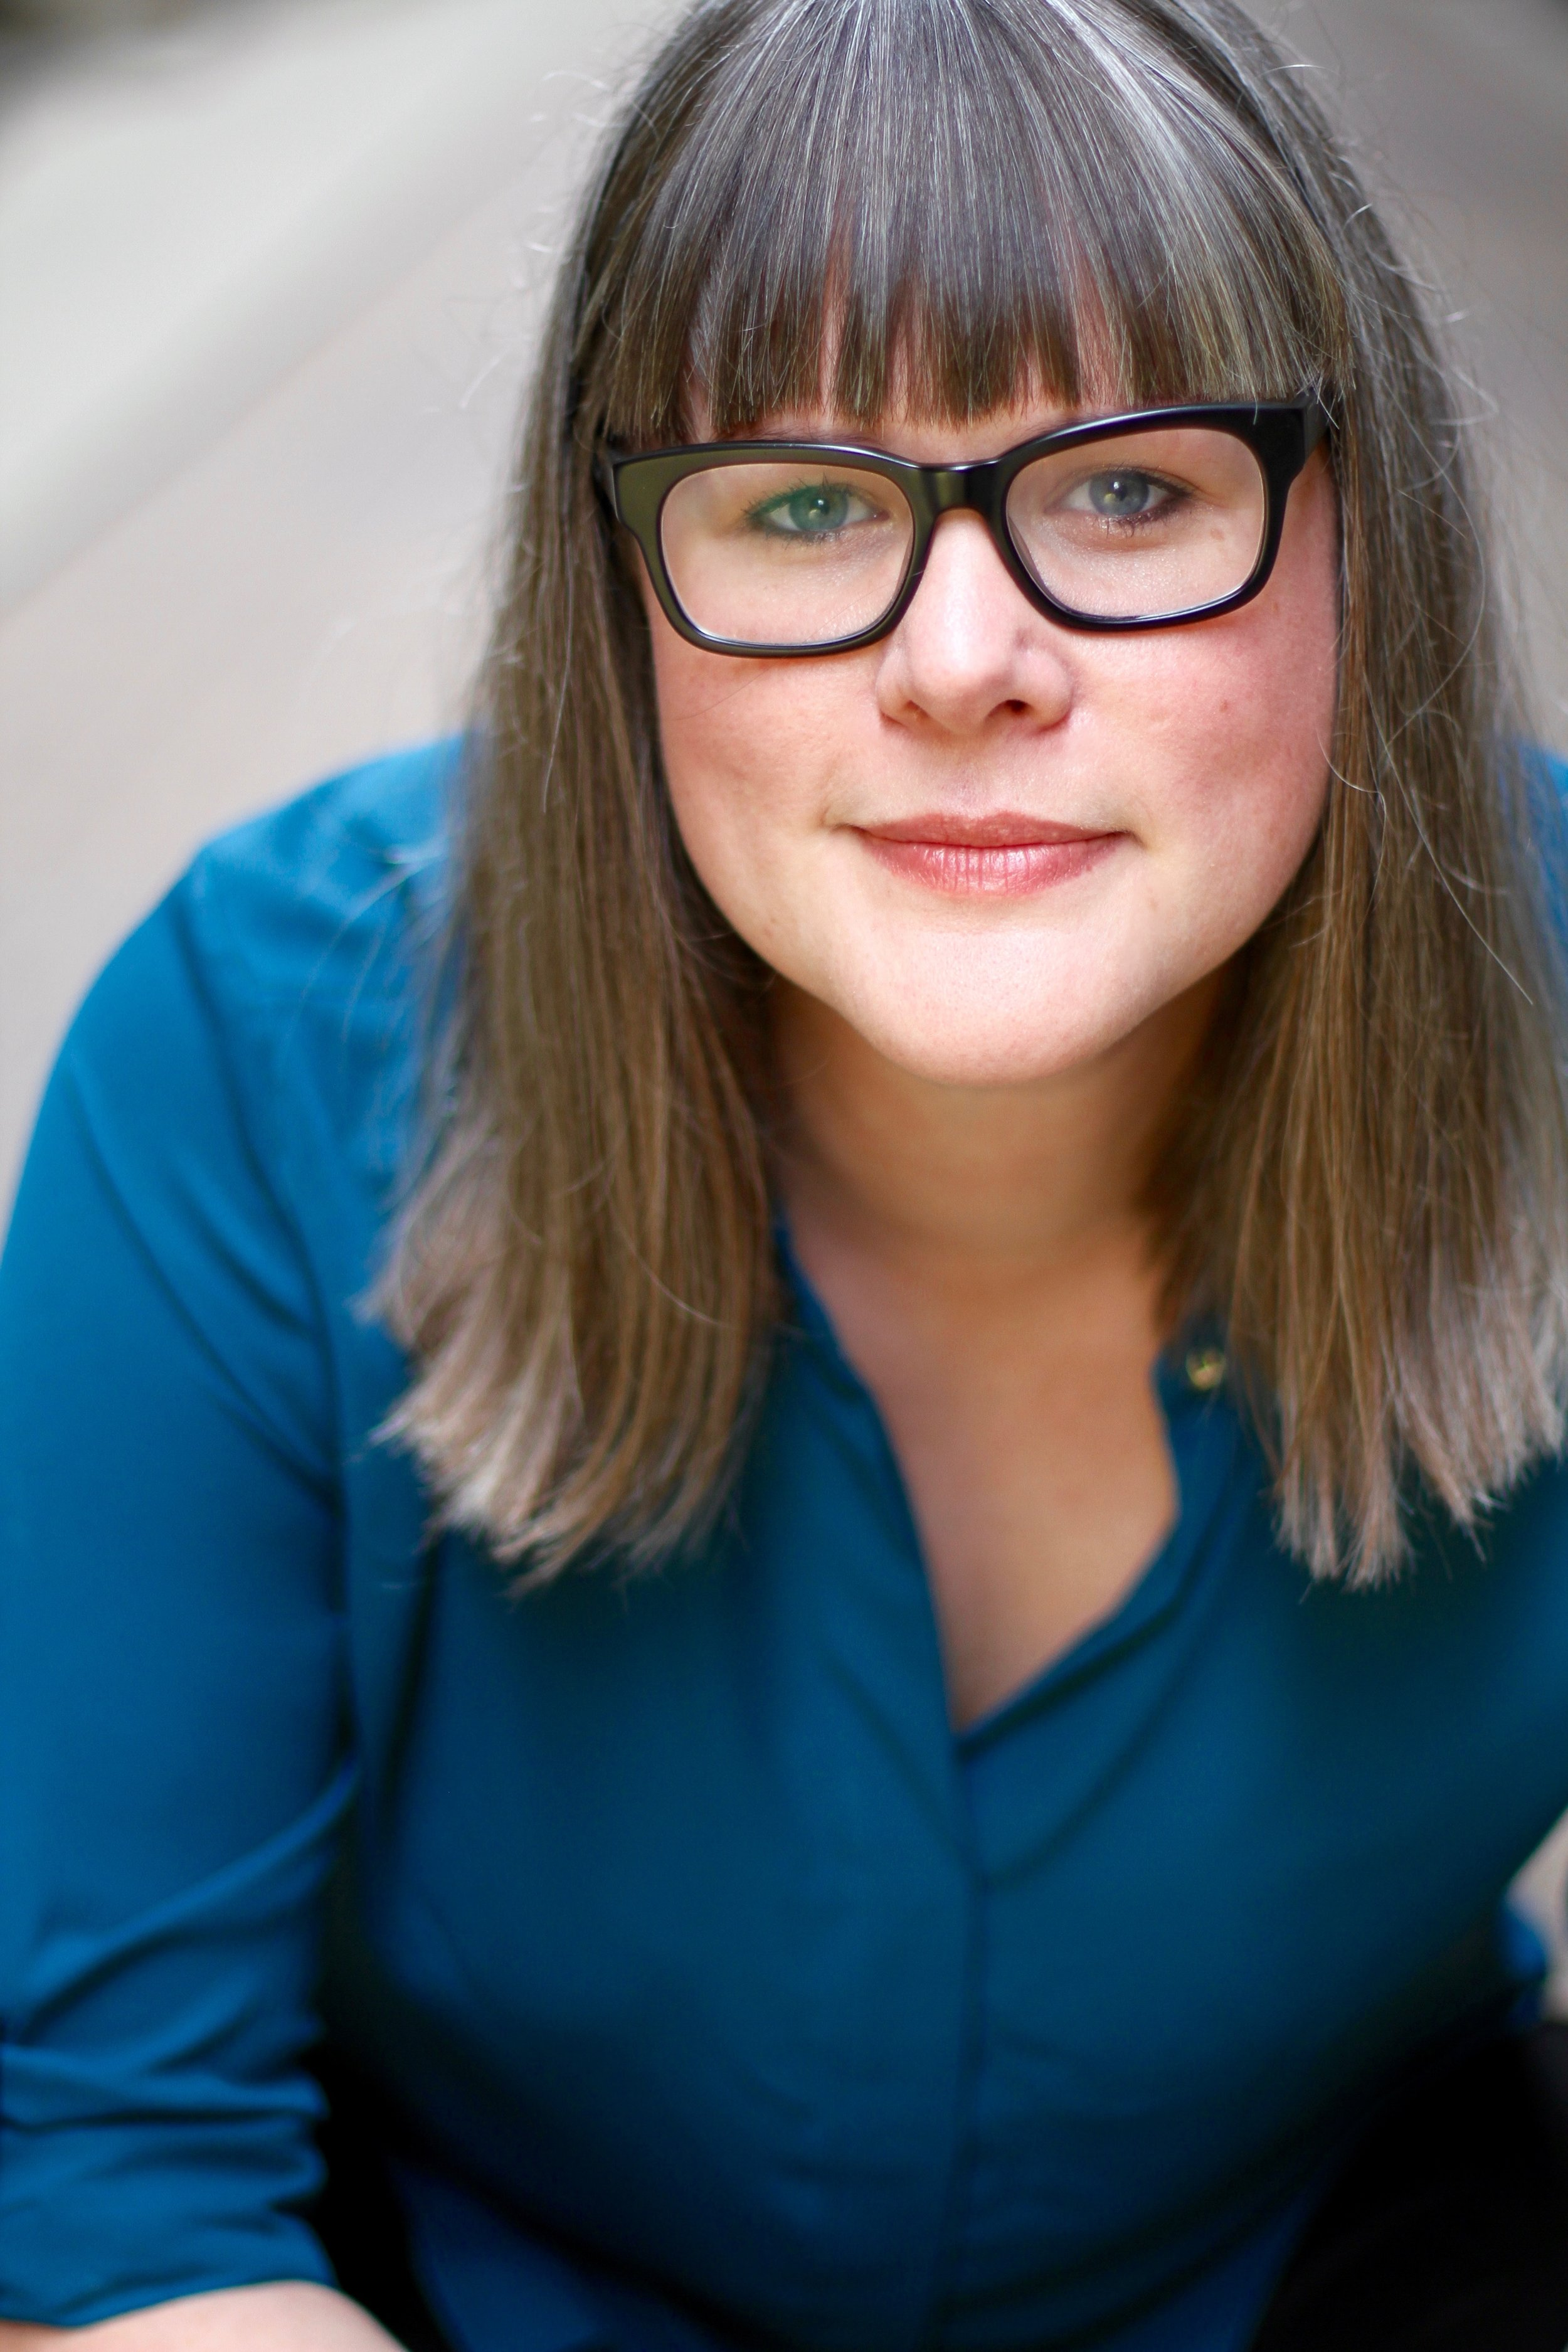 headshot of Bridget Melton: image of woman seated with straight hair, eyeglasses and a teal collared shirt.